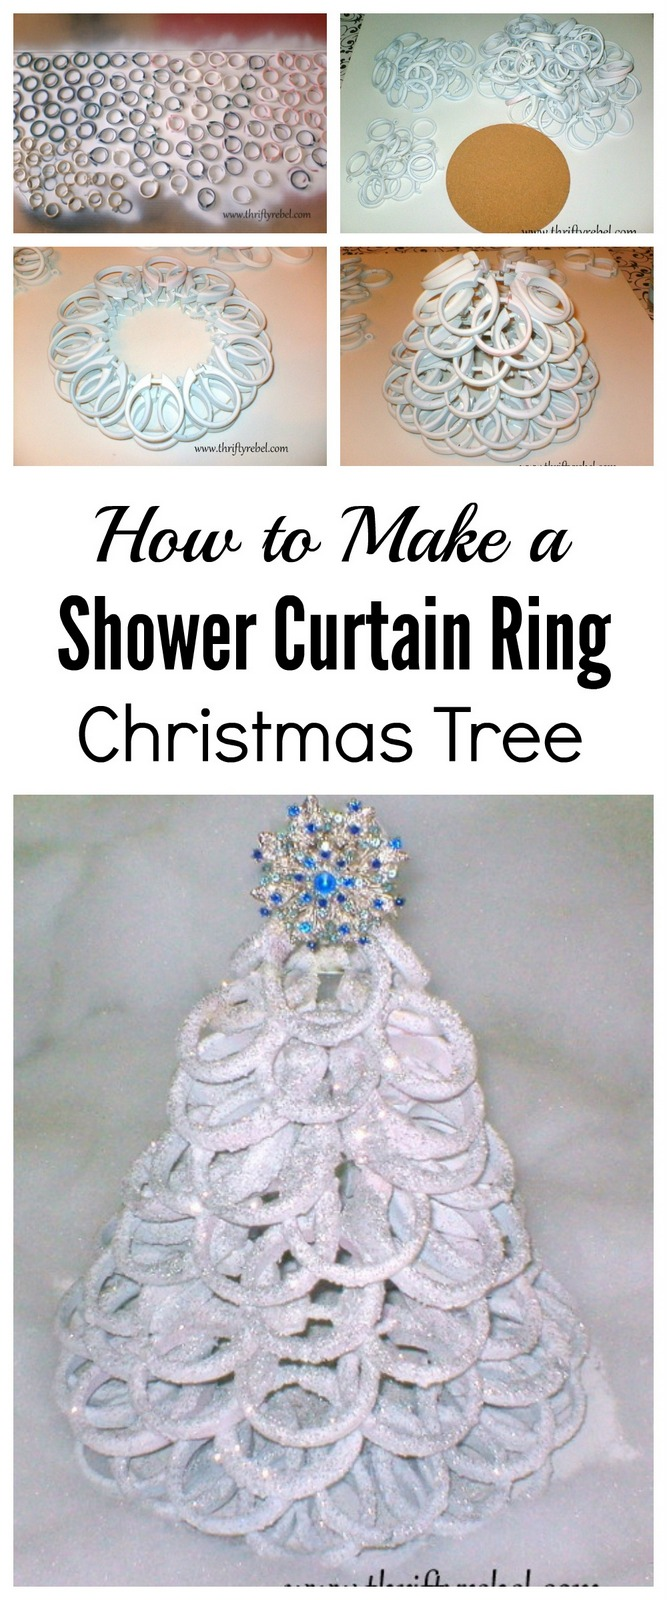 Shower Curtain Ring Christmas Tree Color Me Thrifty